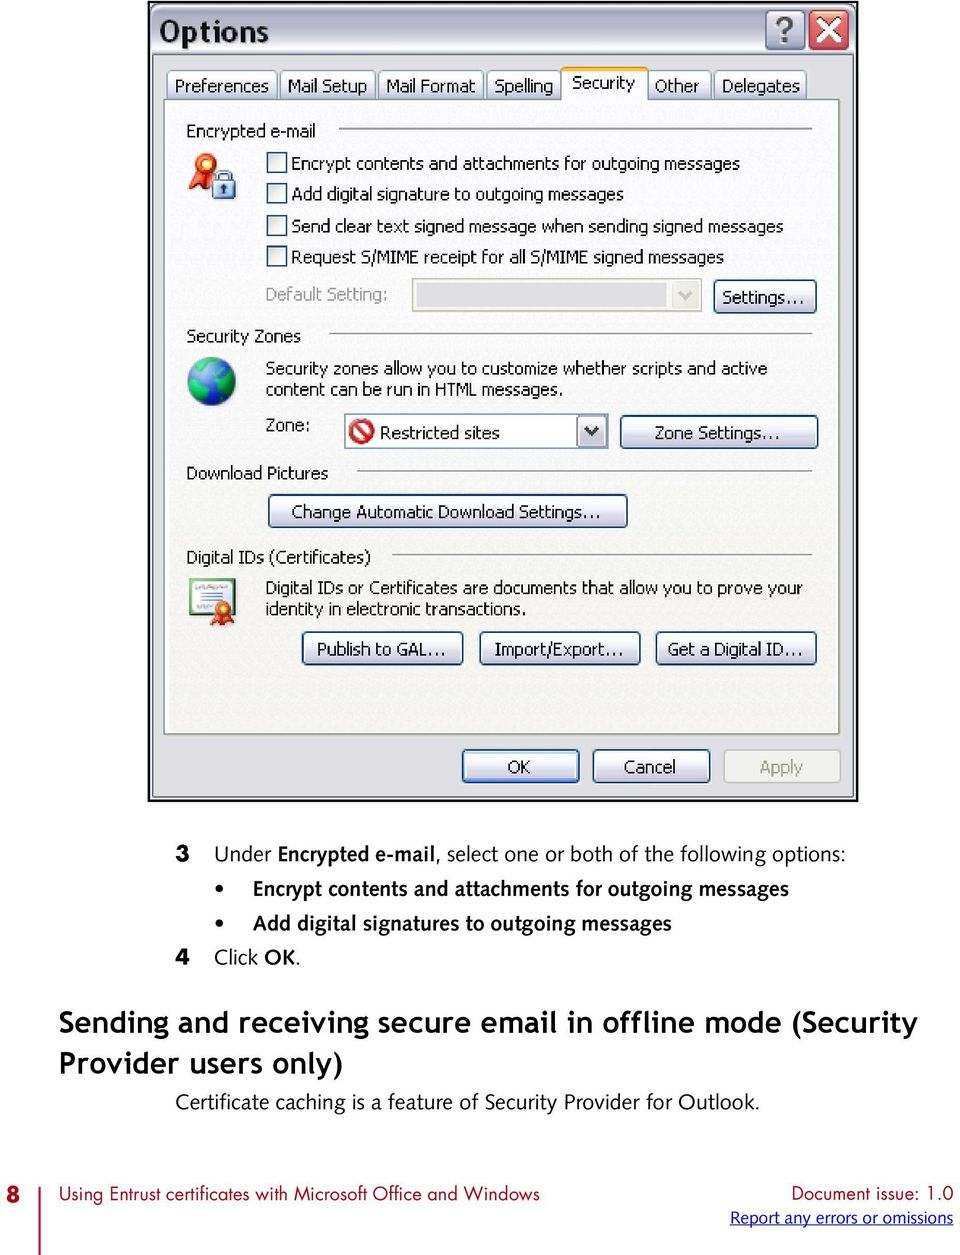 Sending and receiving secure email in offline mode (Security Provider users only) Certificate caching